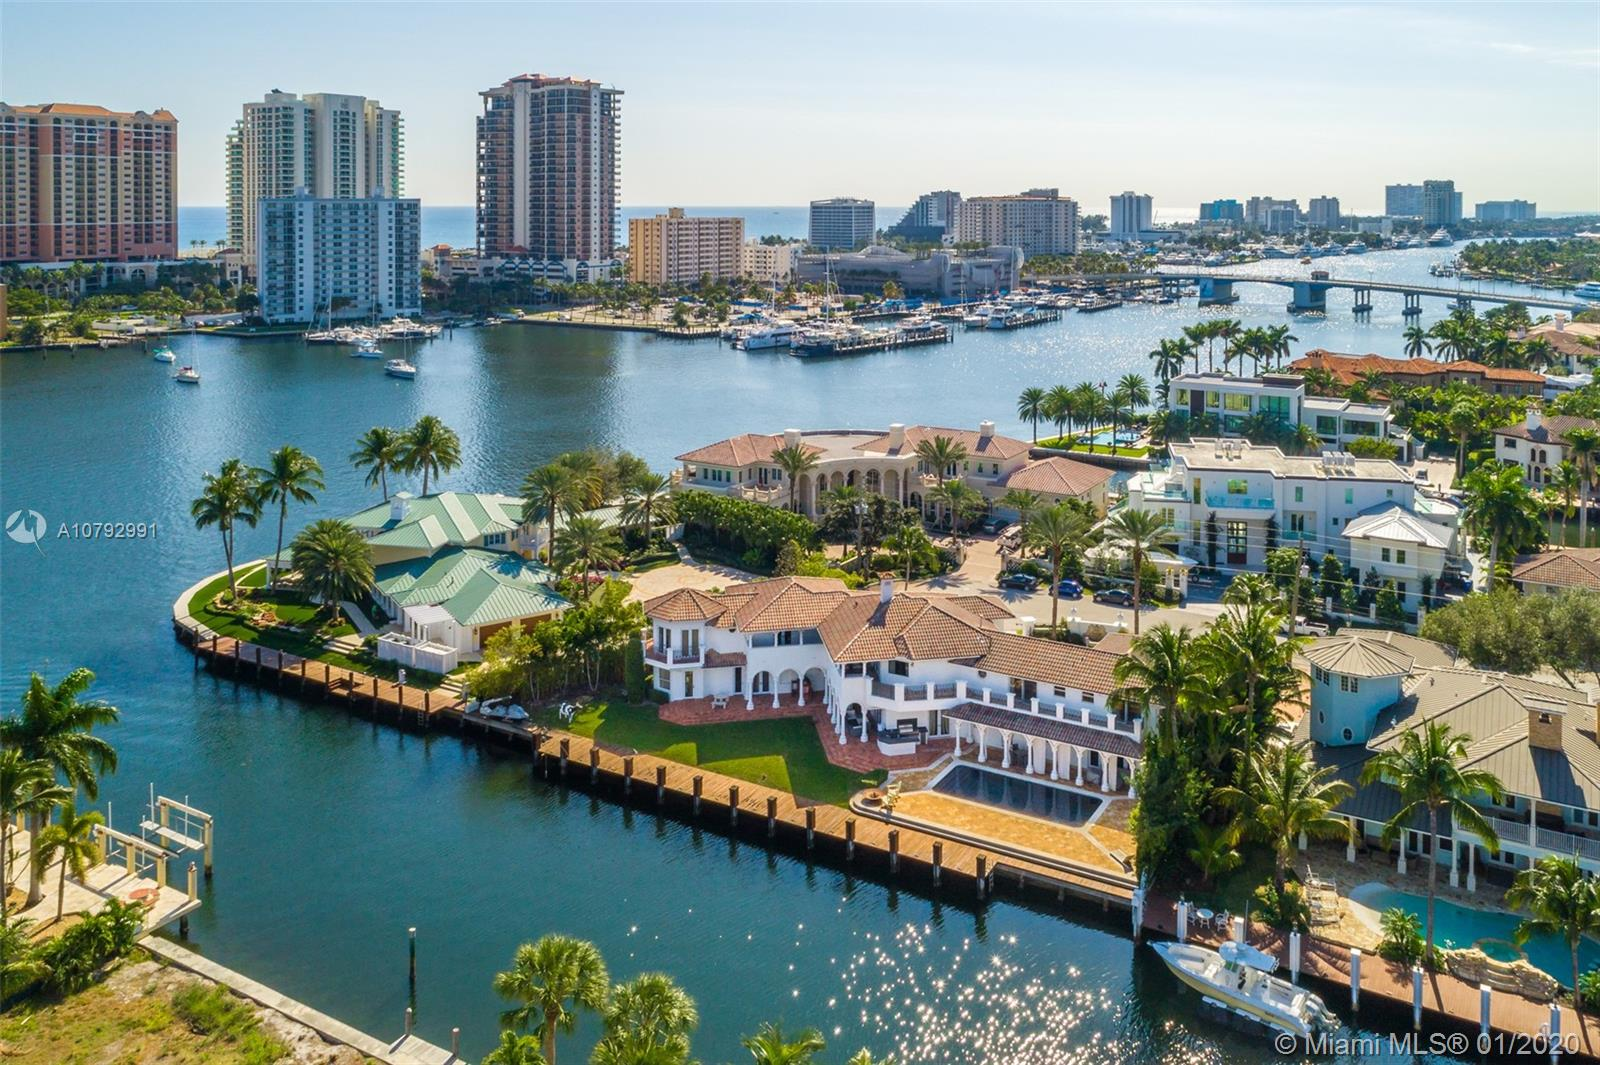 This newly renovated, 9,369sf Mediterranean Estate is located minutes from Las Olas Blvd inside the premier neighborhood of Seven Isles. Offering 6 bedrooms, 7.5 bathrooms, a separate guesthouse, gym, movie theater and office - this spectacular lot totals 17,519sf and sits only ONE lot from the open water. A beautifully landscaped and gated driveway offers an elegant grand entrance. Tremendous backyard space, a large heated pool, covered balconies and a yacht lover's dream deck situated upon 185ft of waterfront makes this estate the best deal in the neighborhood!